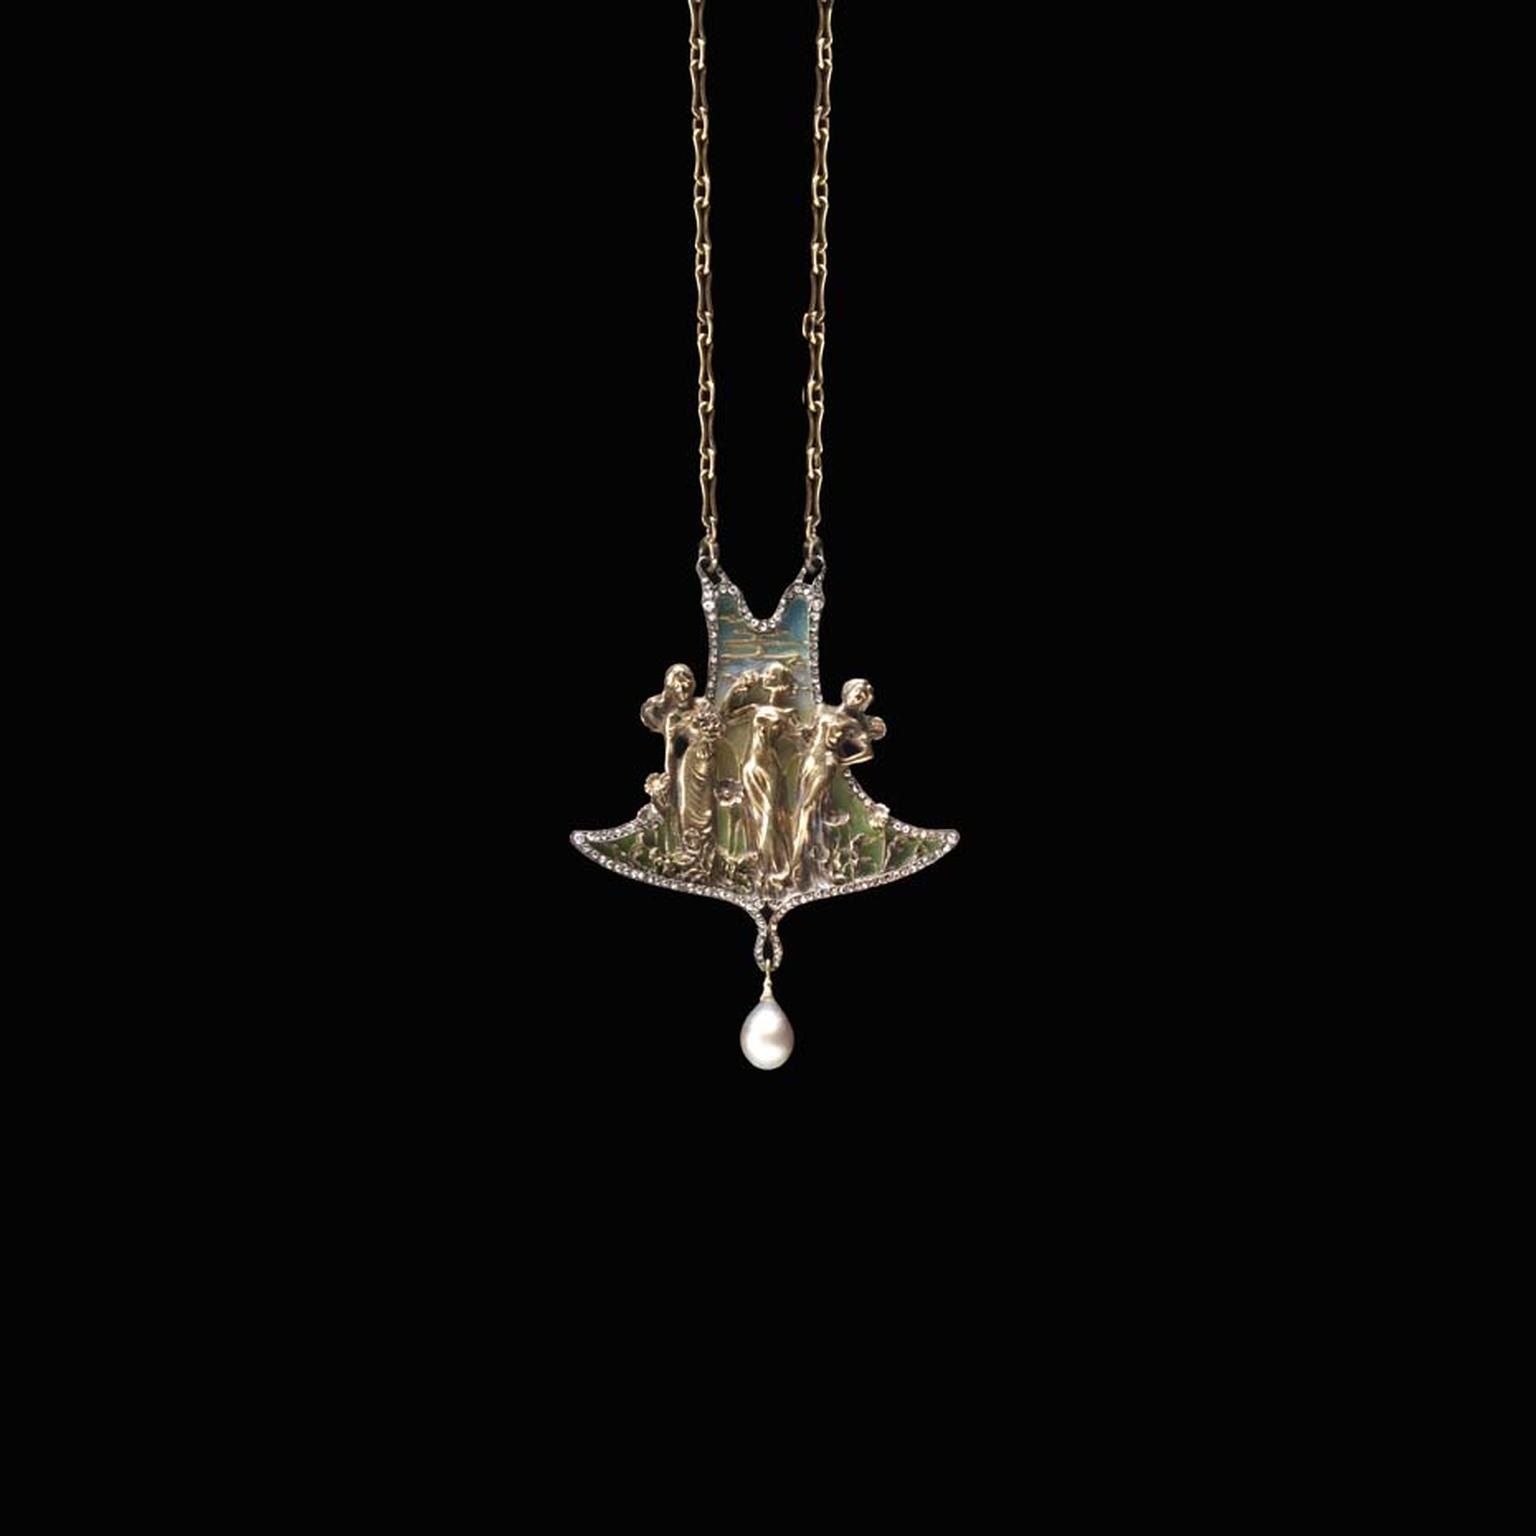 Joë Descomps Three Grace pendant. On display at the Driehaus Museum Maker & Muse exhibition.